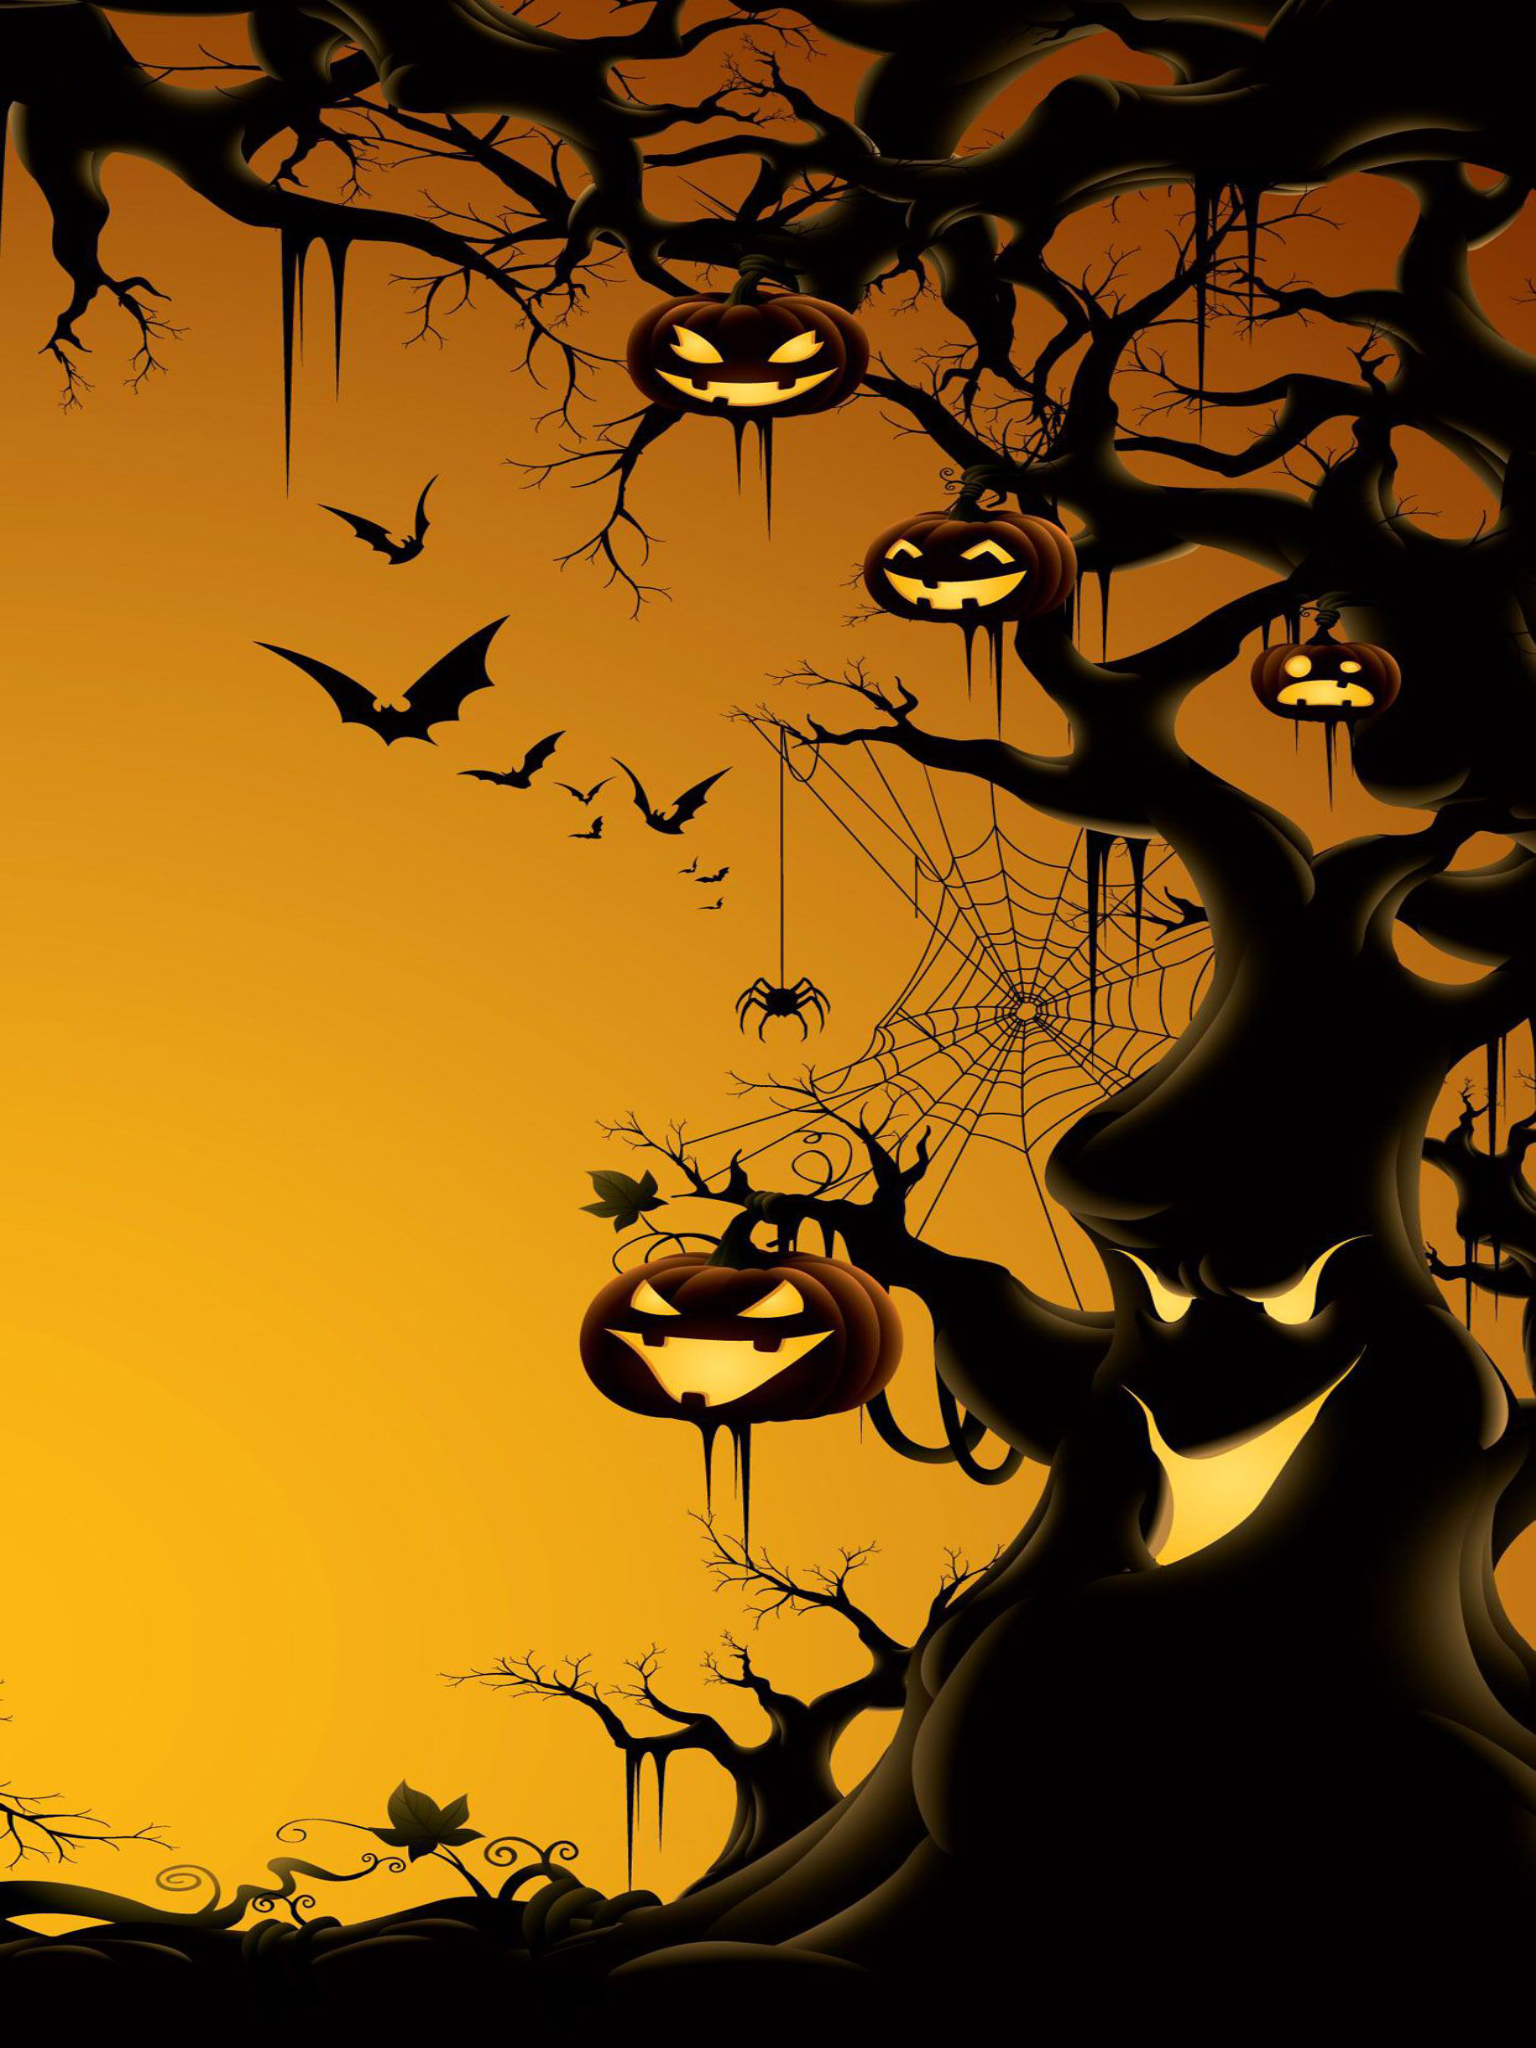 Pin by Amanda Stratton on Halloween Halloween wallpaper